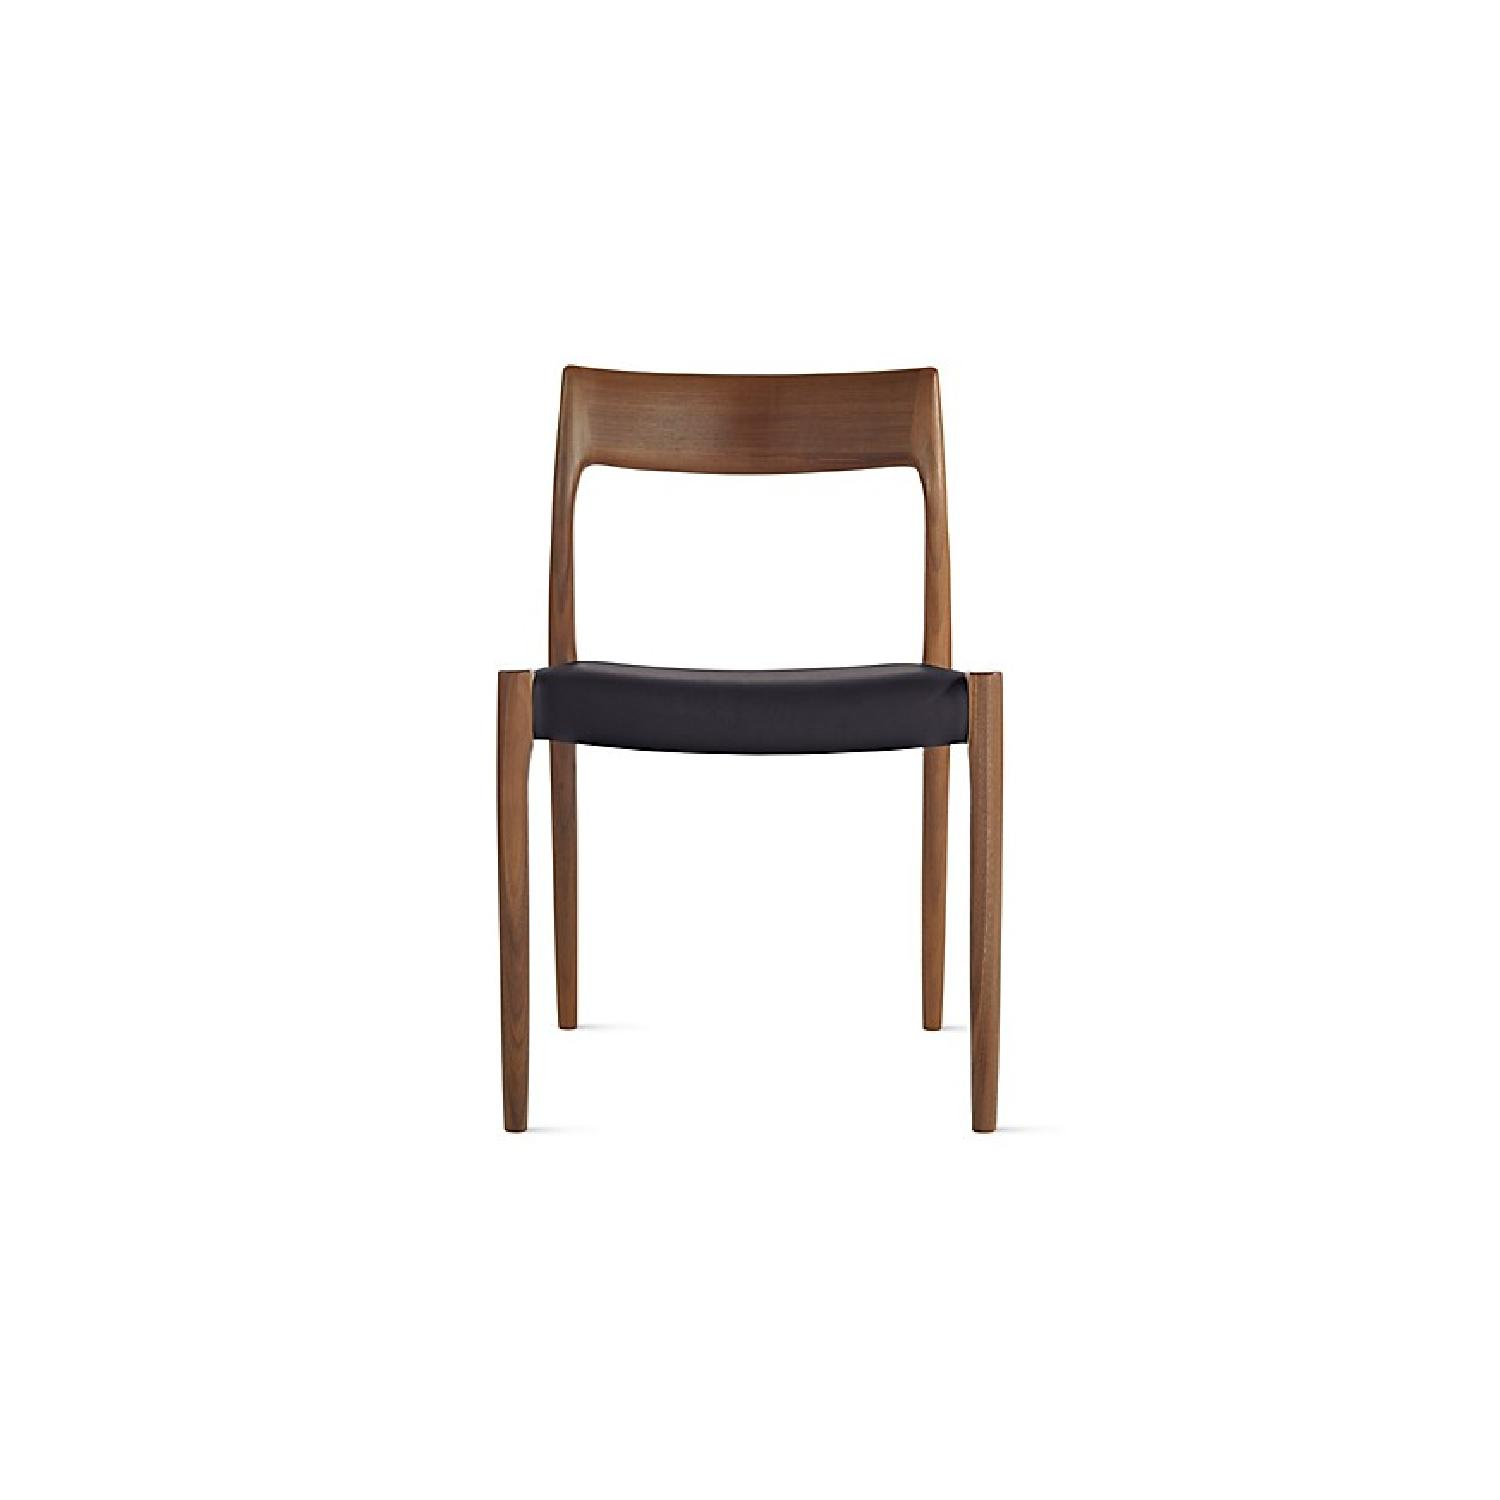 Design Within Reach Moeller Model 77 Side/Dining Chairs